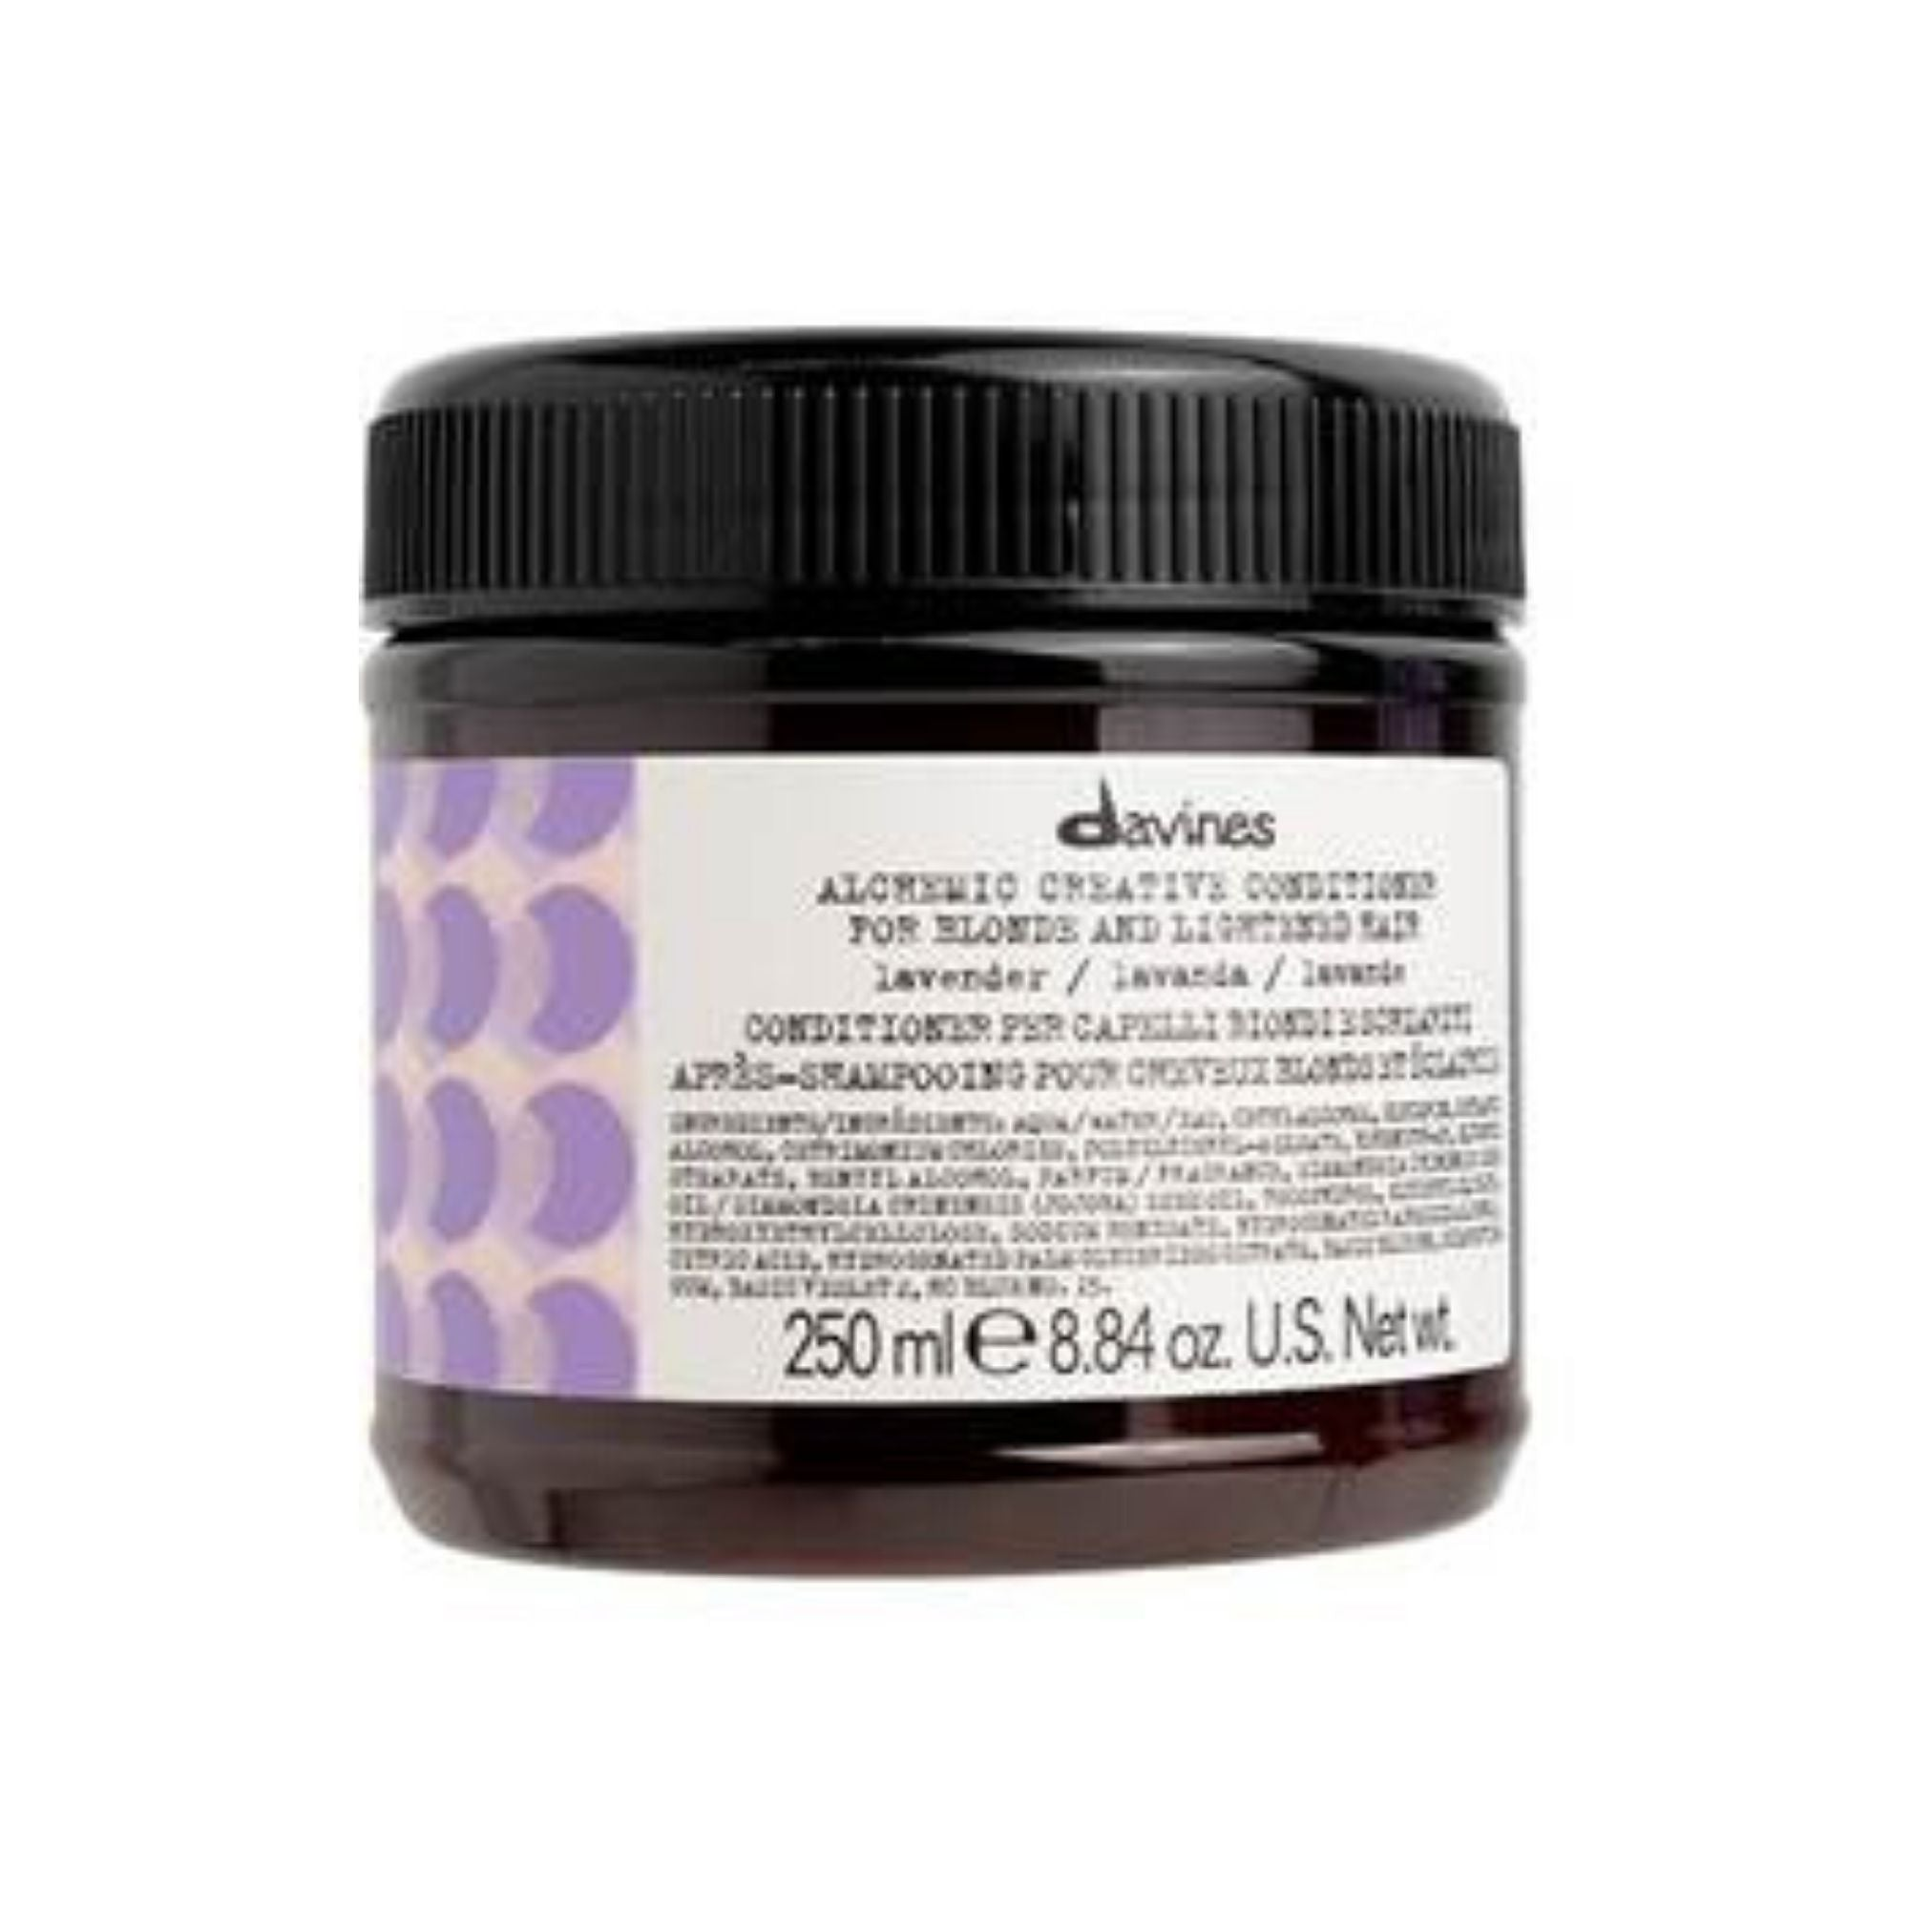 Davines Alchemic Creative Conditioner 250ml